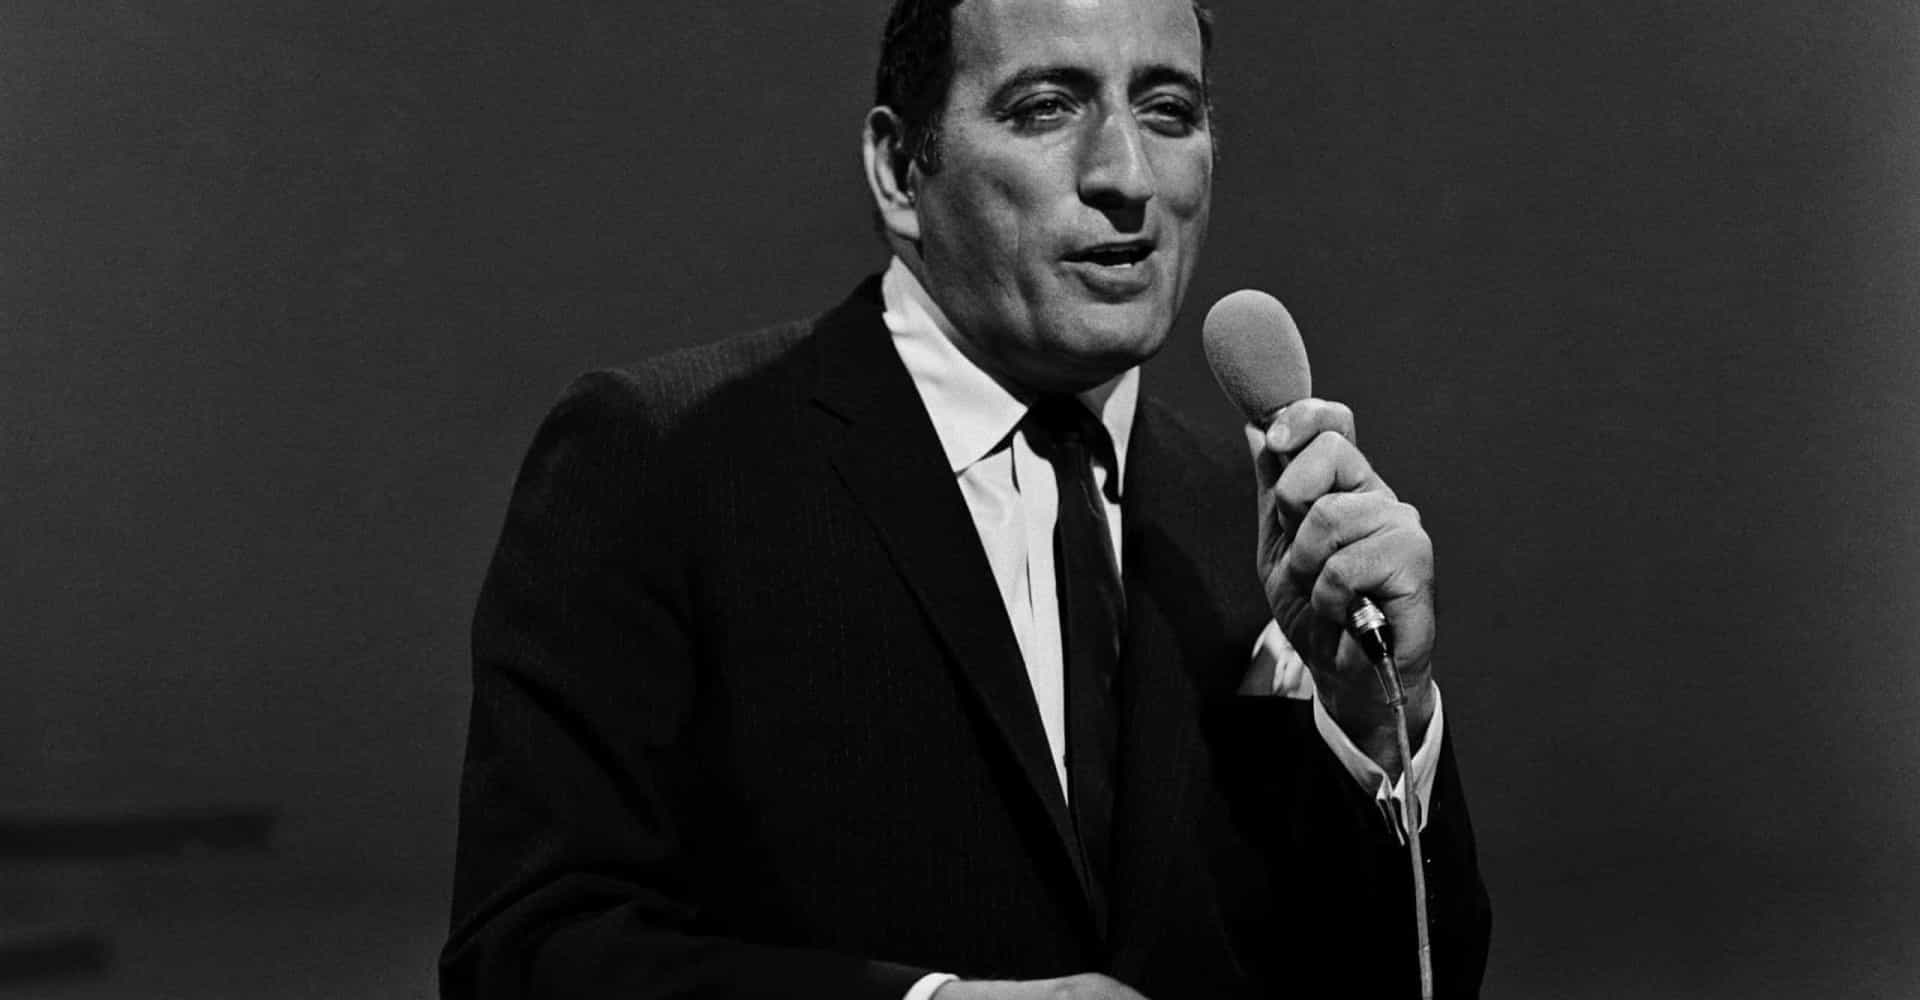 Tony Bennett: the last of the great crooners